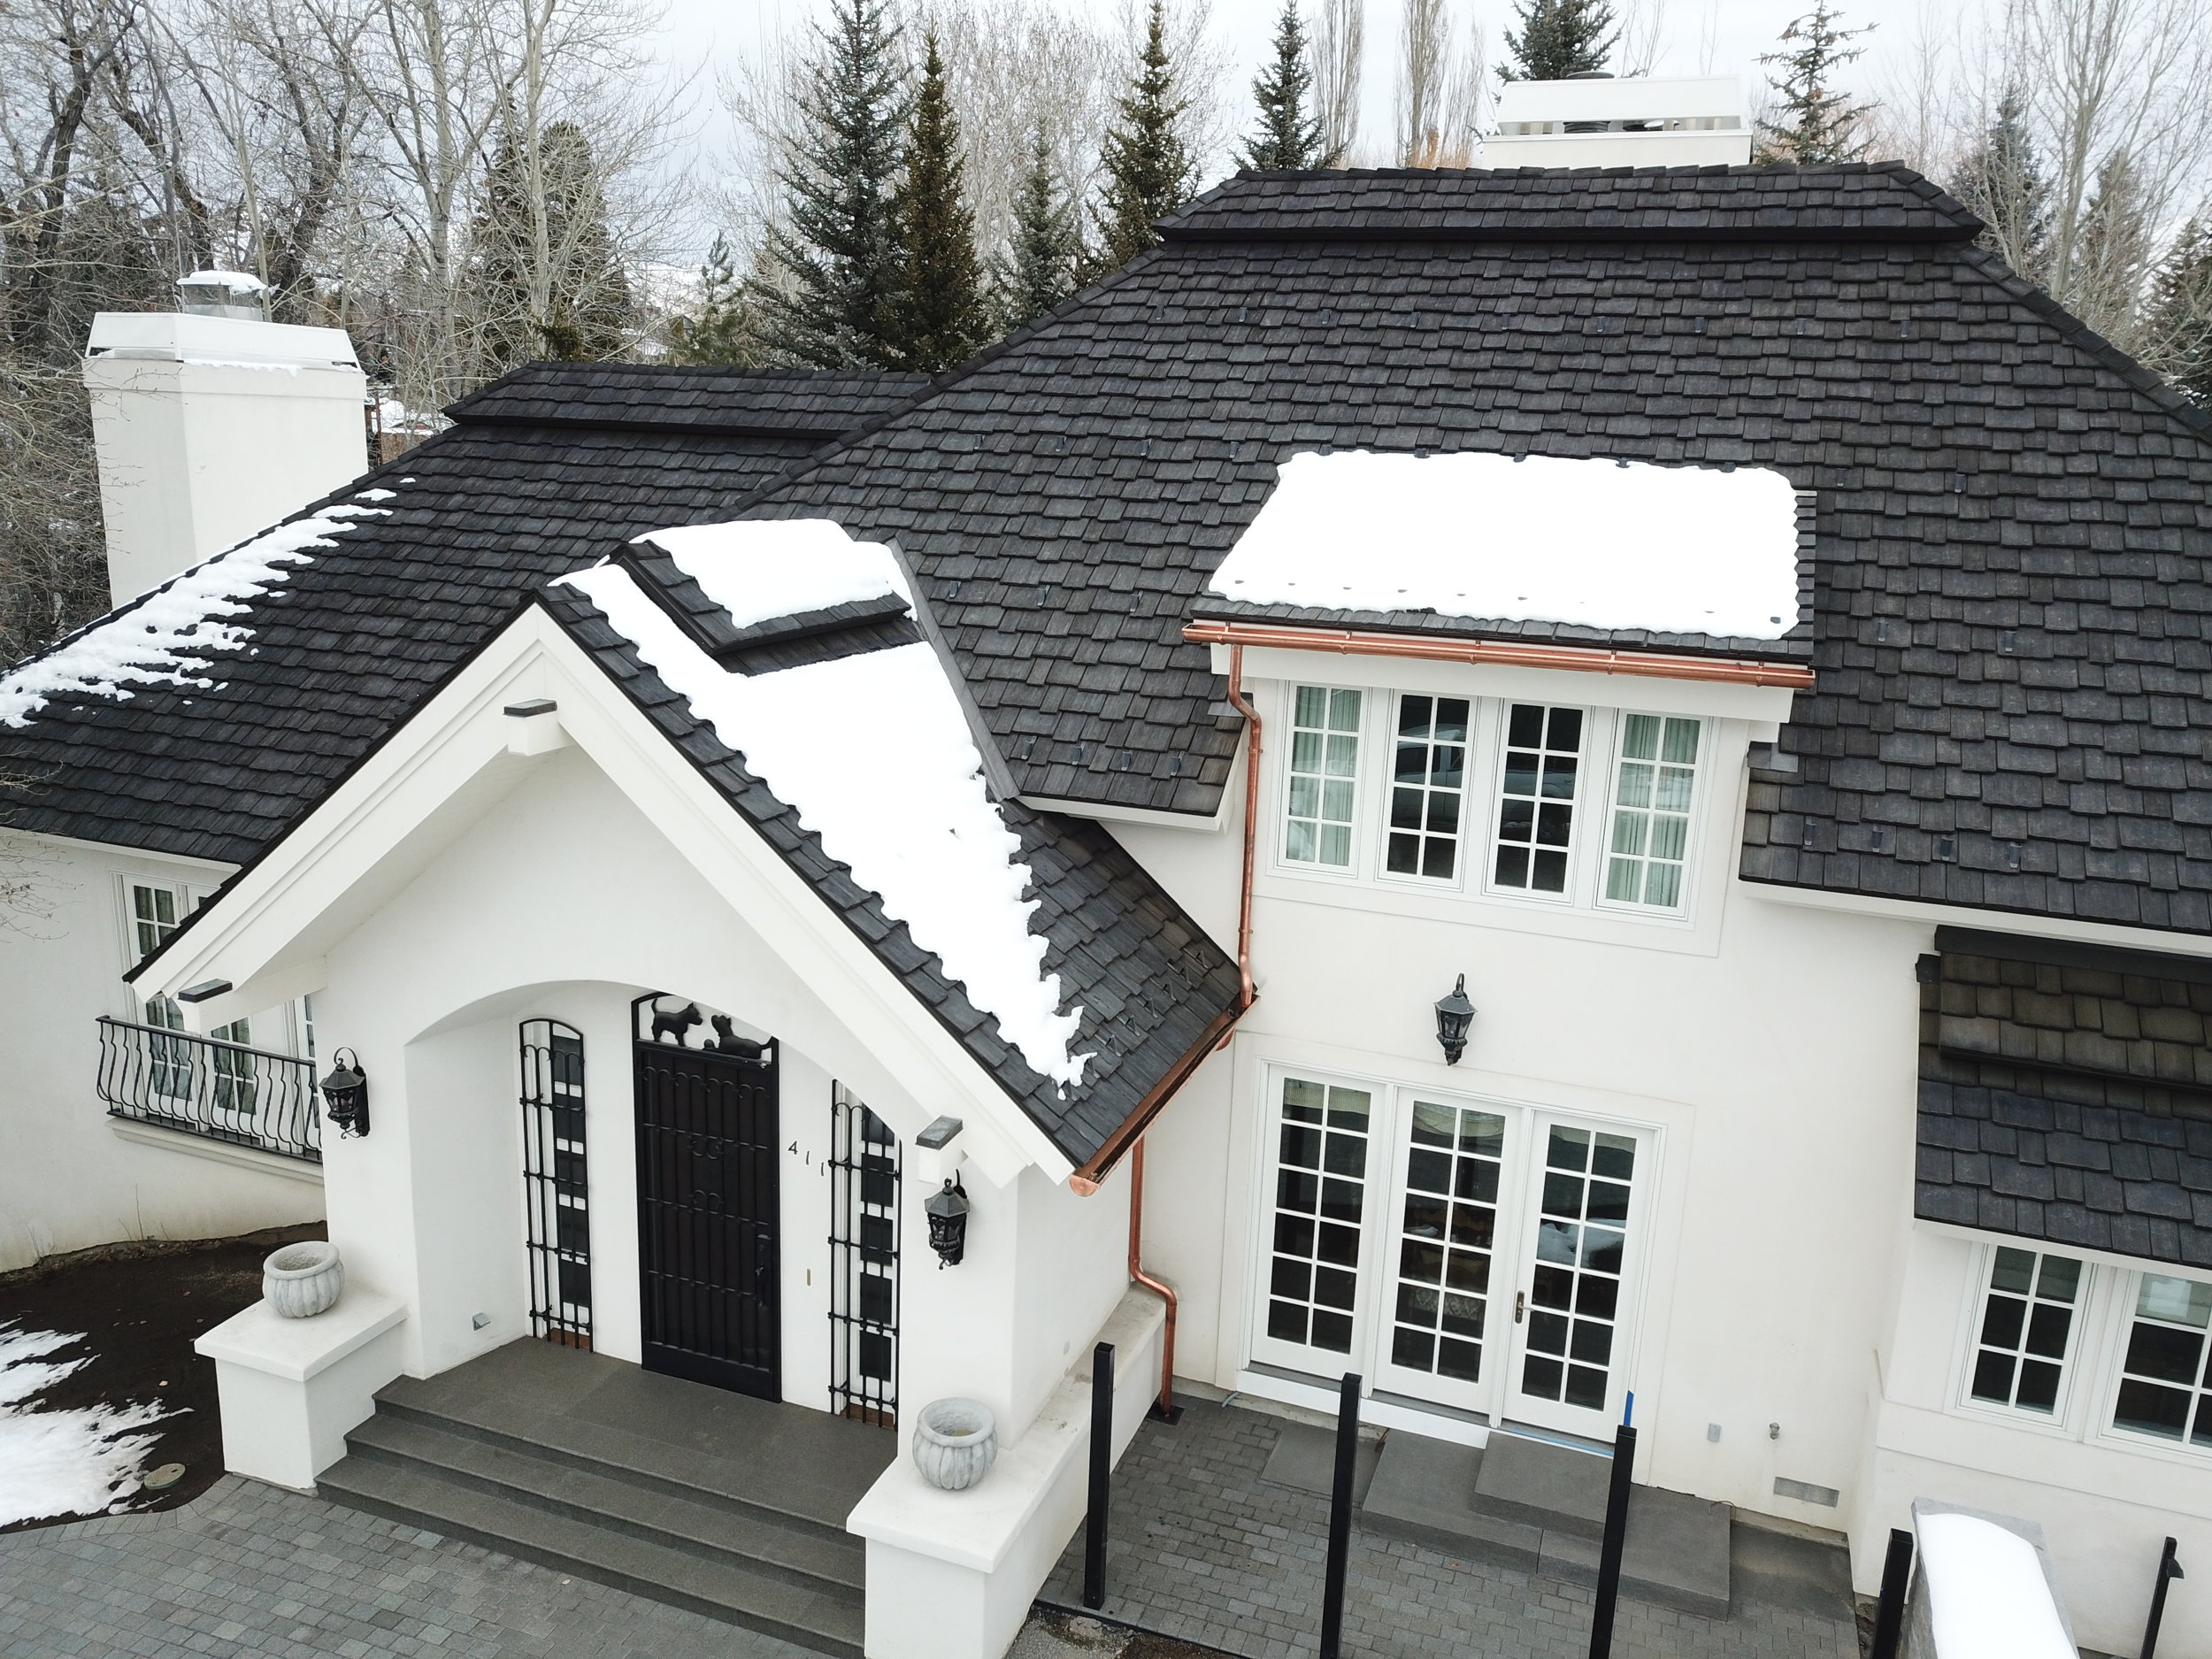 Shiloh-Sun Valley-Wood River Roofing.JPG